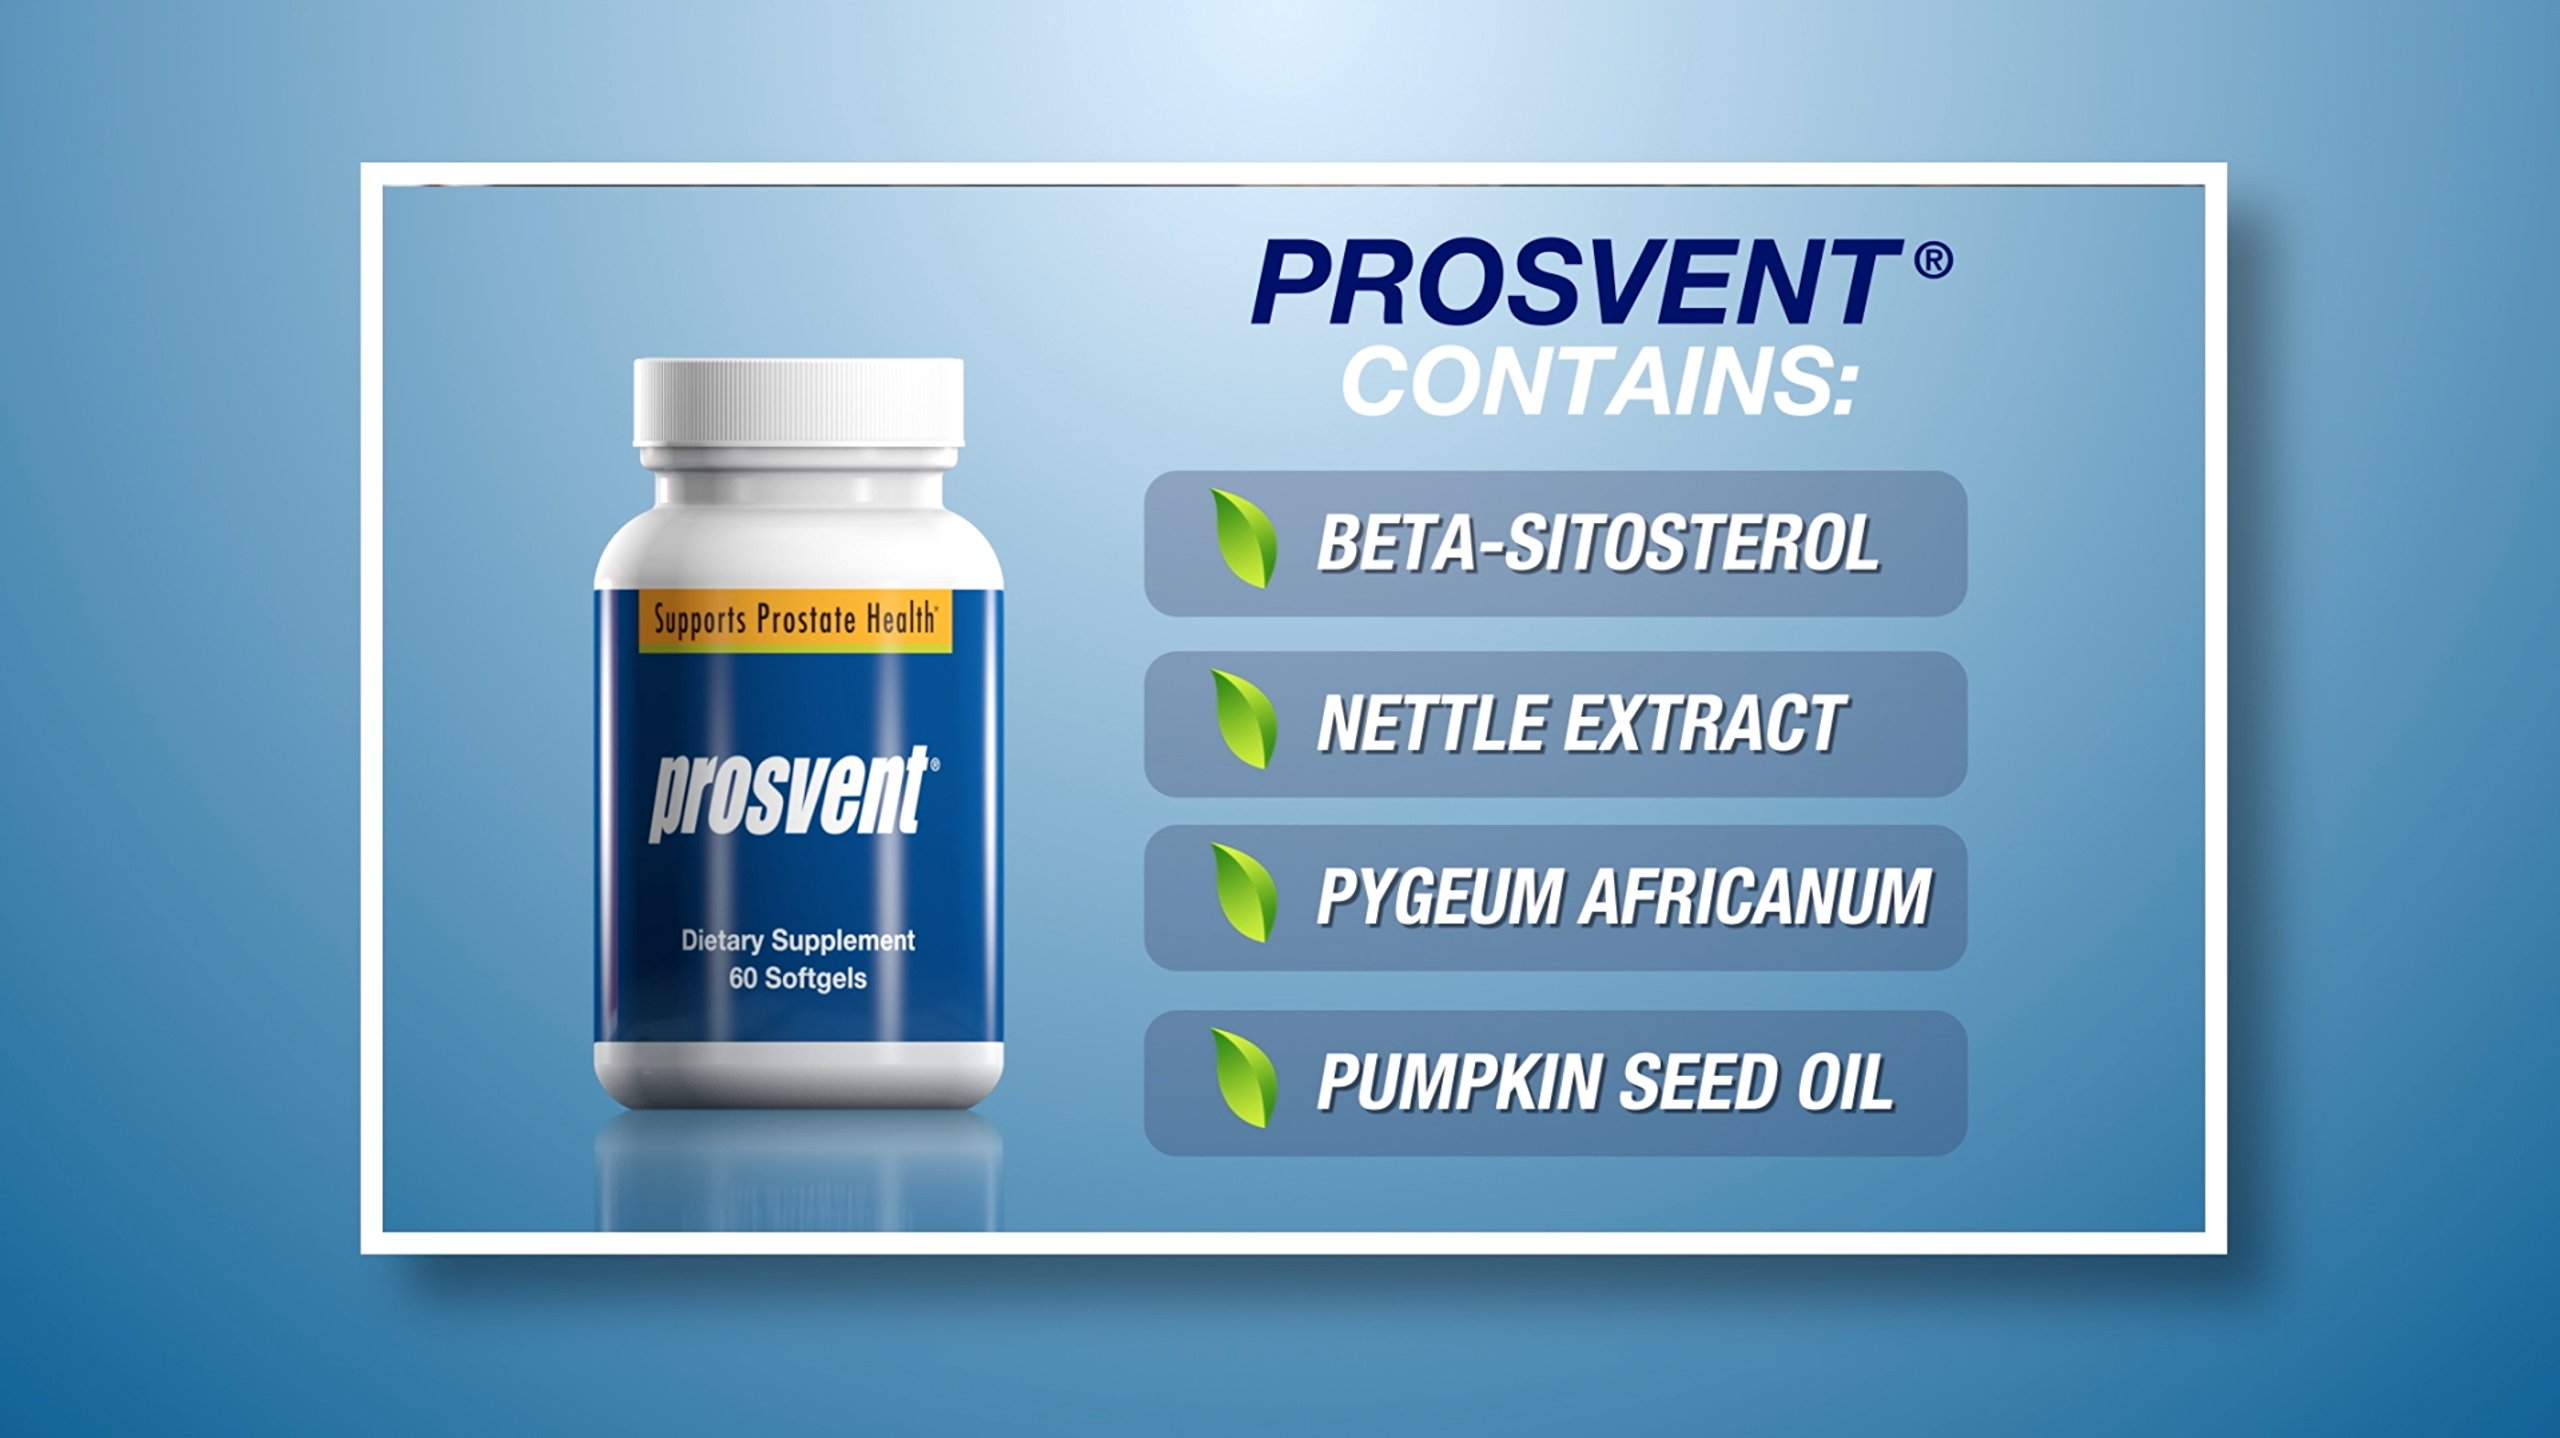 PROSVENT-NATURAL PROSTATE HEALTH SUPPLEMENT -Clinically Tested Ingredients- Reduce Urgency & Frequency. Improve Flow, Sleep, Health & Quality Of Life. OVER 180 MILLION DOSES SOLD! –3 Month Supply by Prosvent (Image #4)